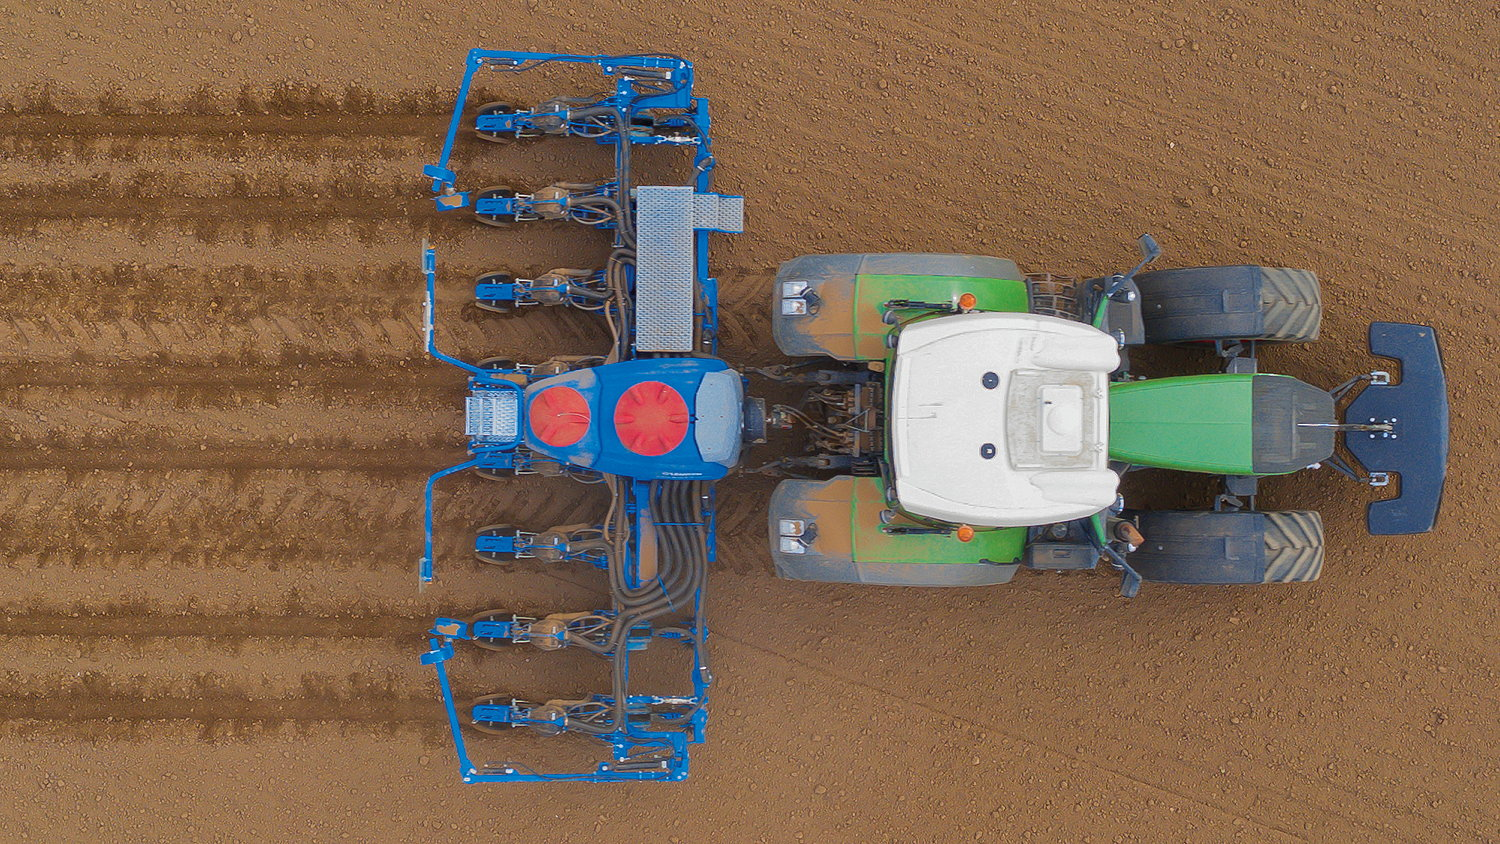 Lemken's new Azurit 10 features a number of benefits compared to the previous model